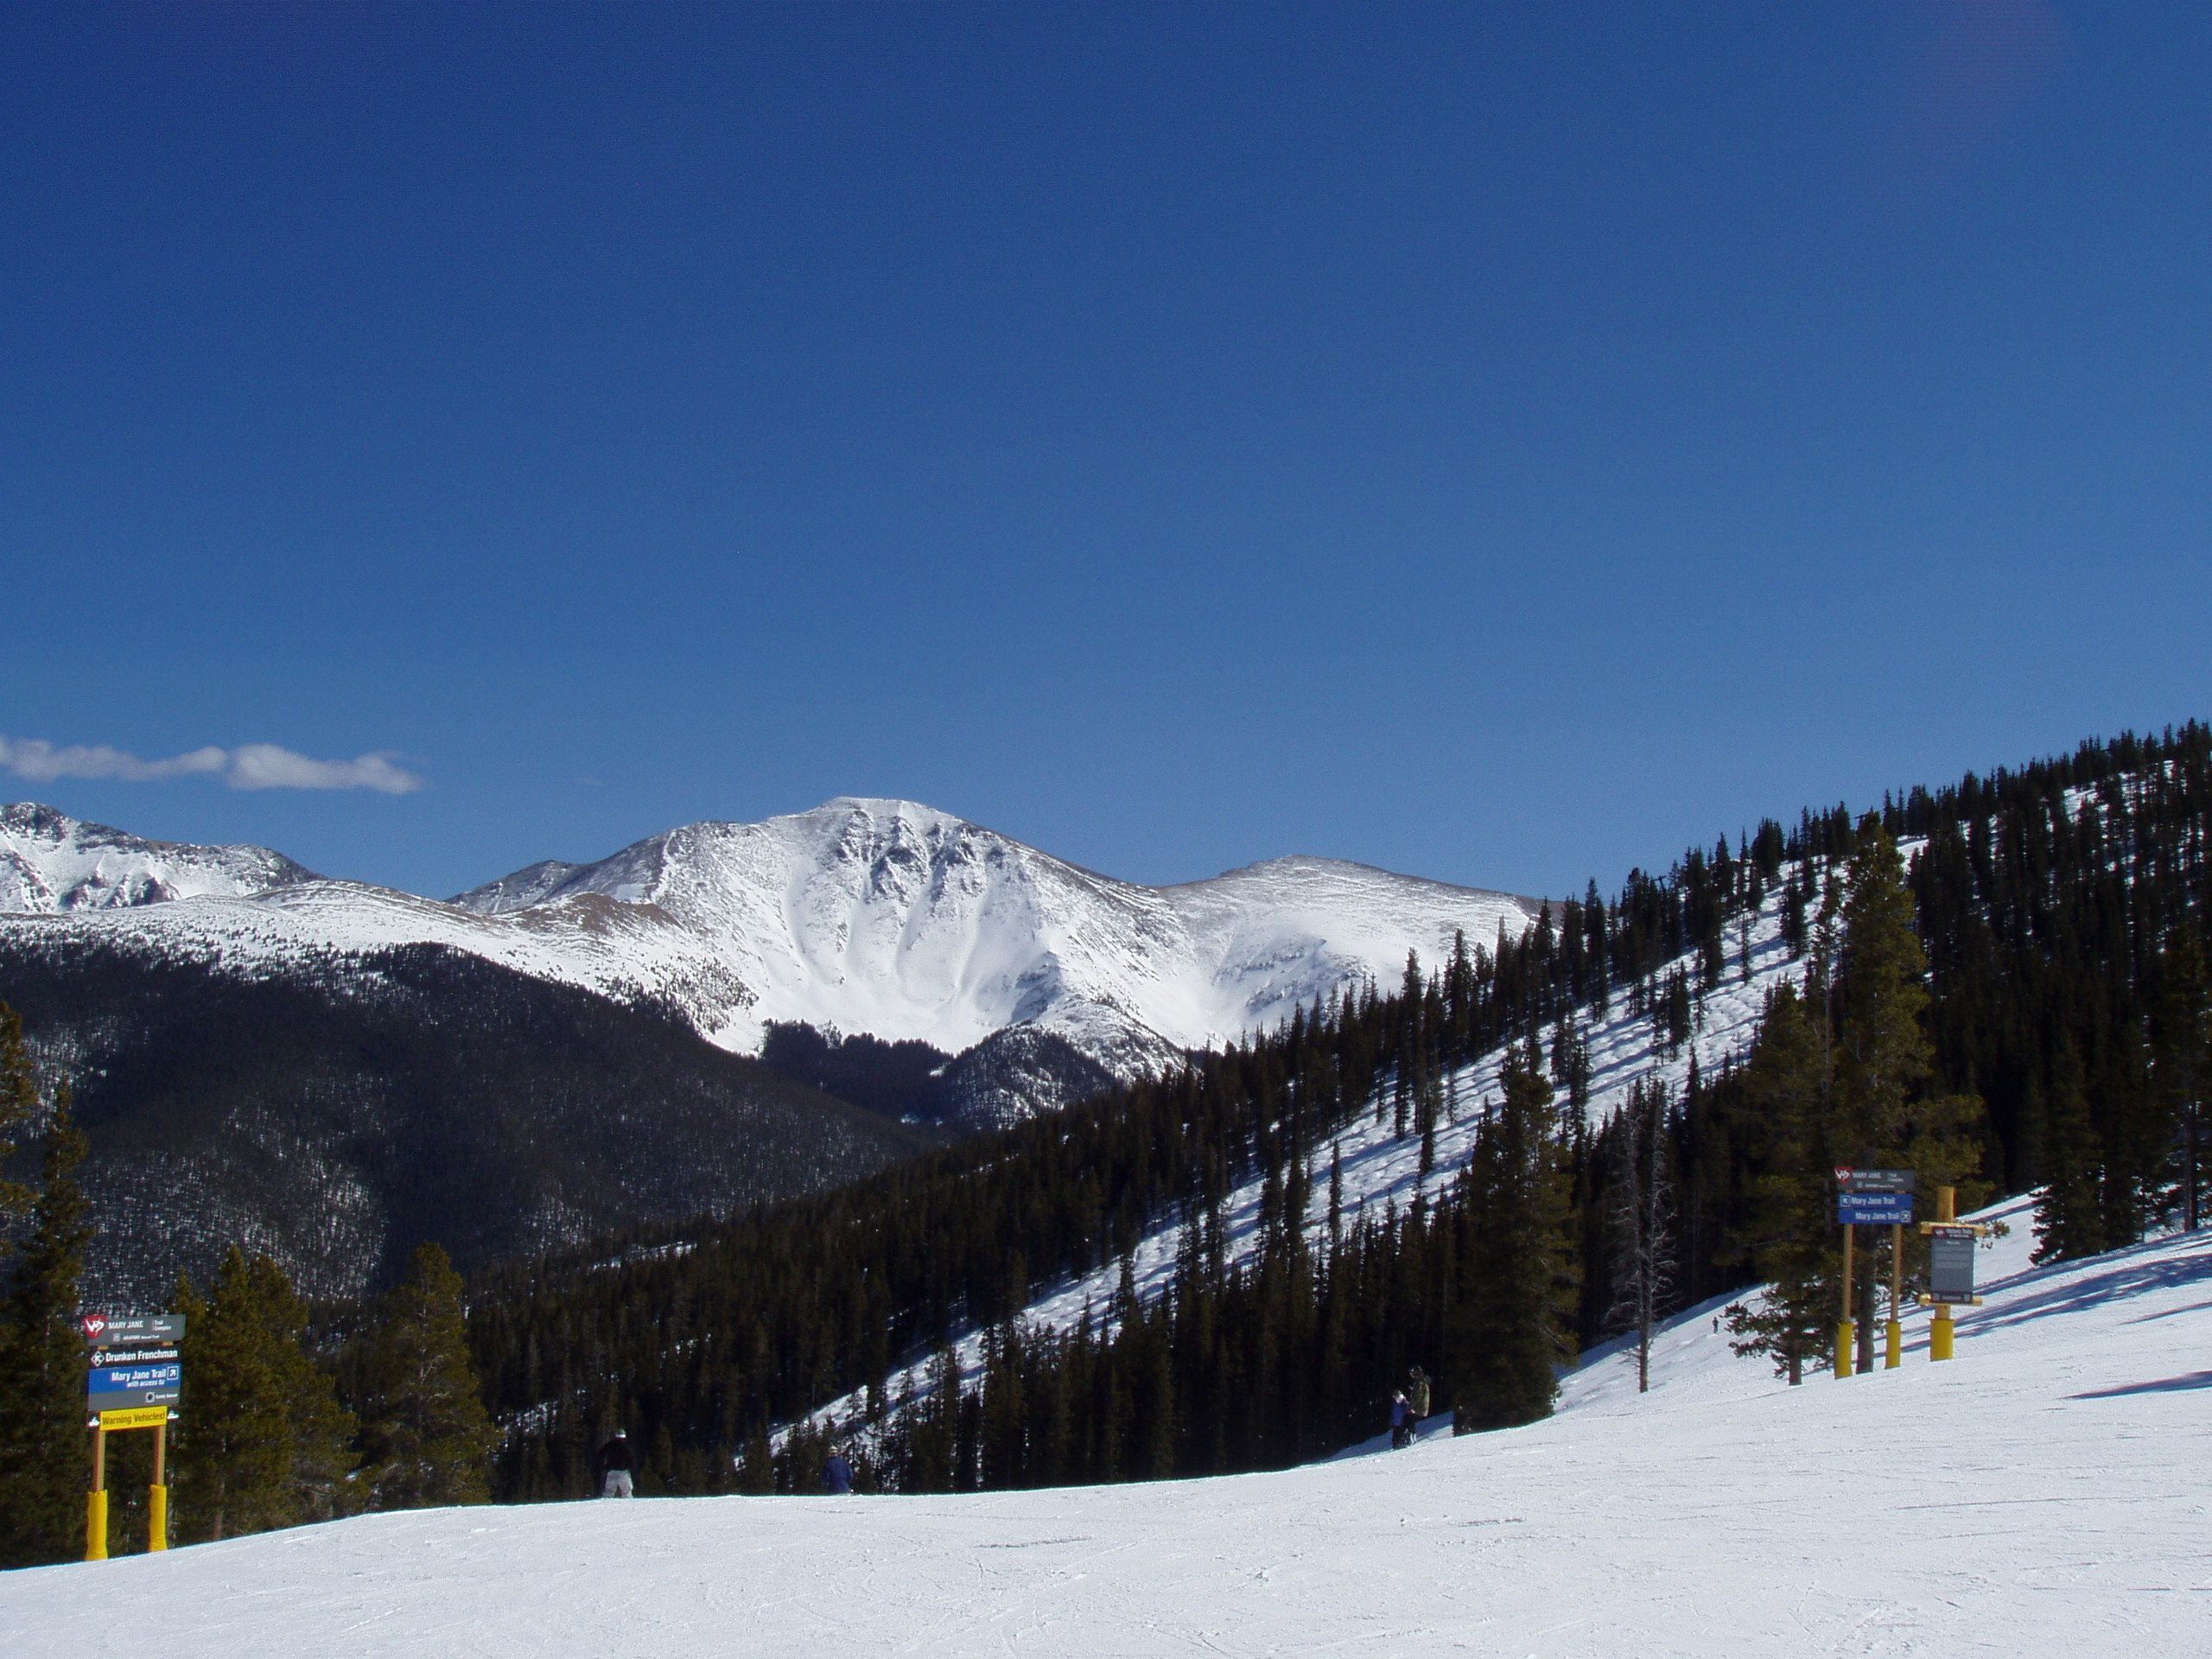 Favorite place to ski, Winter Park, CO